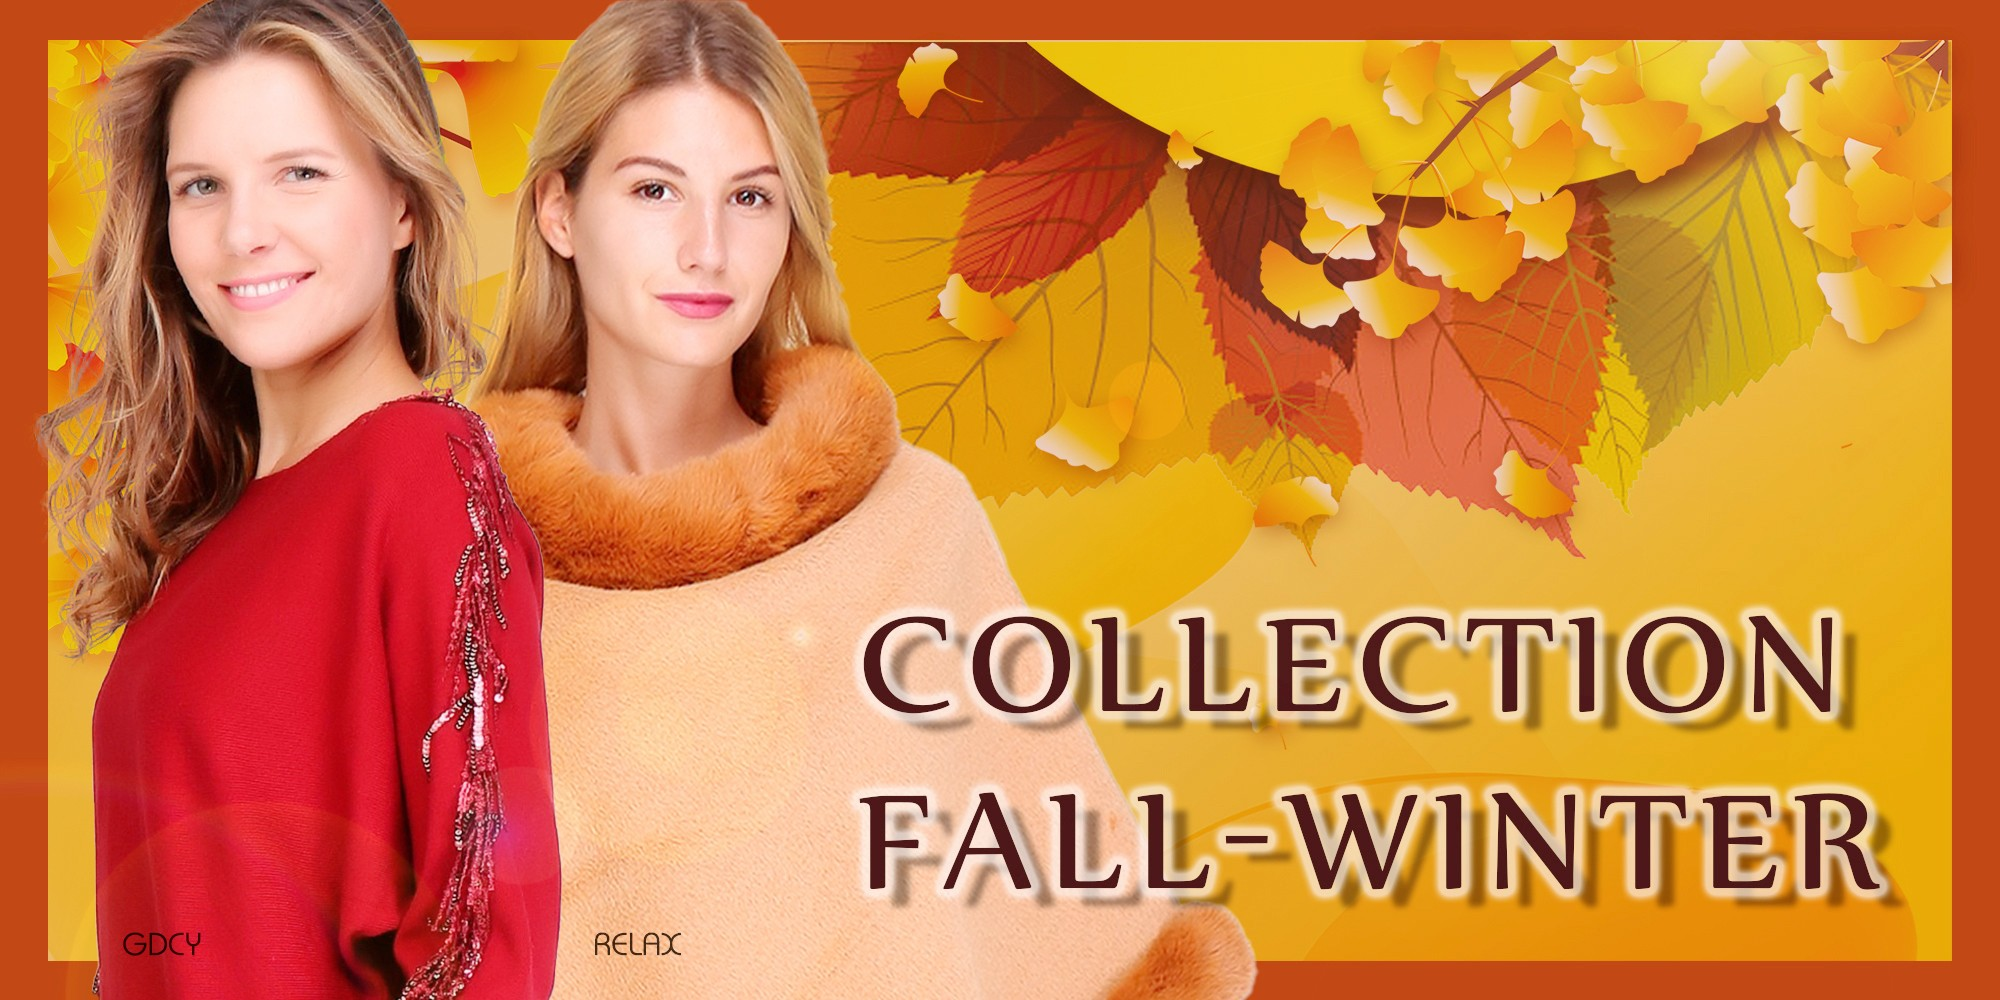 Collection fall winter 2019 french wholesalers in Fashion Center